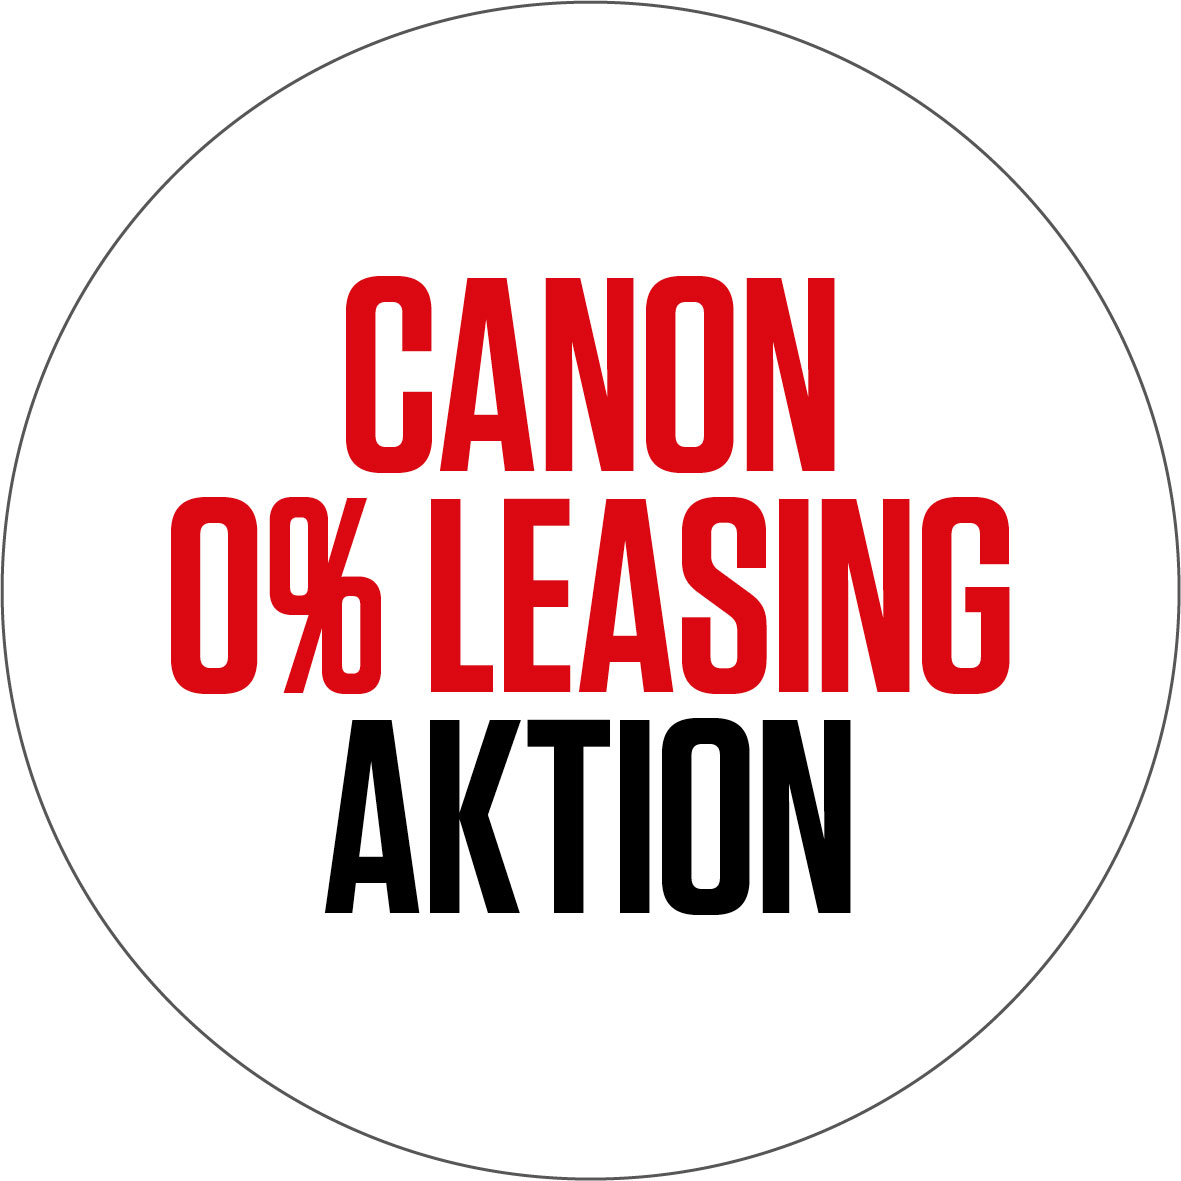 Canon 0% Leasing